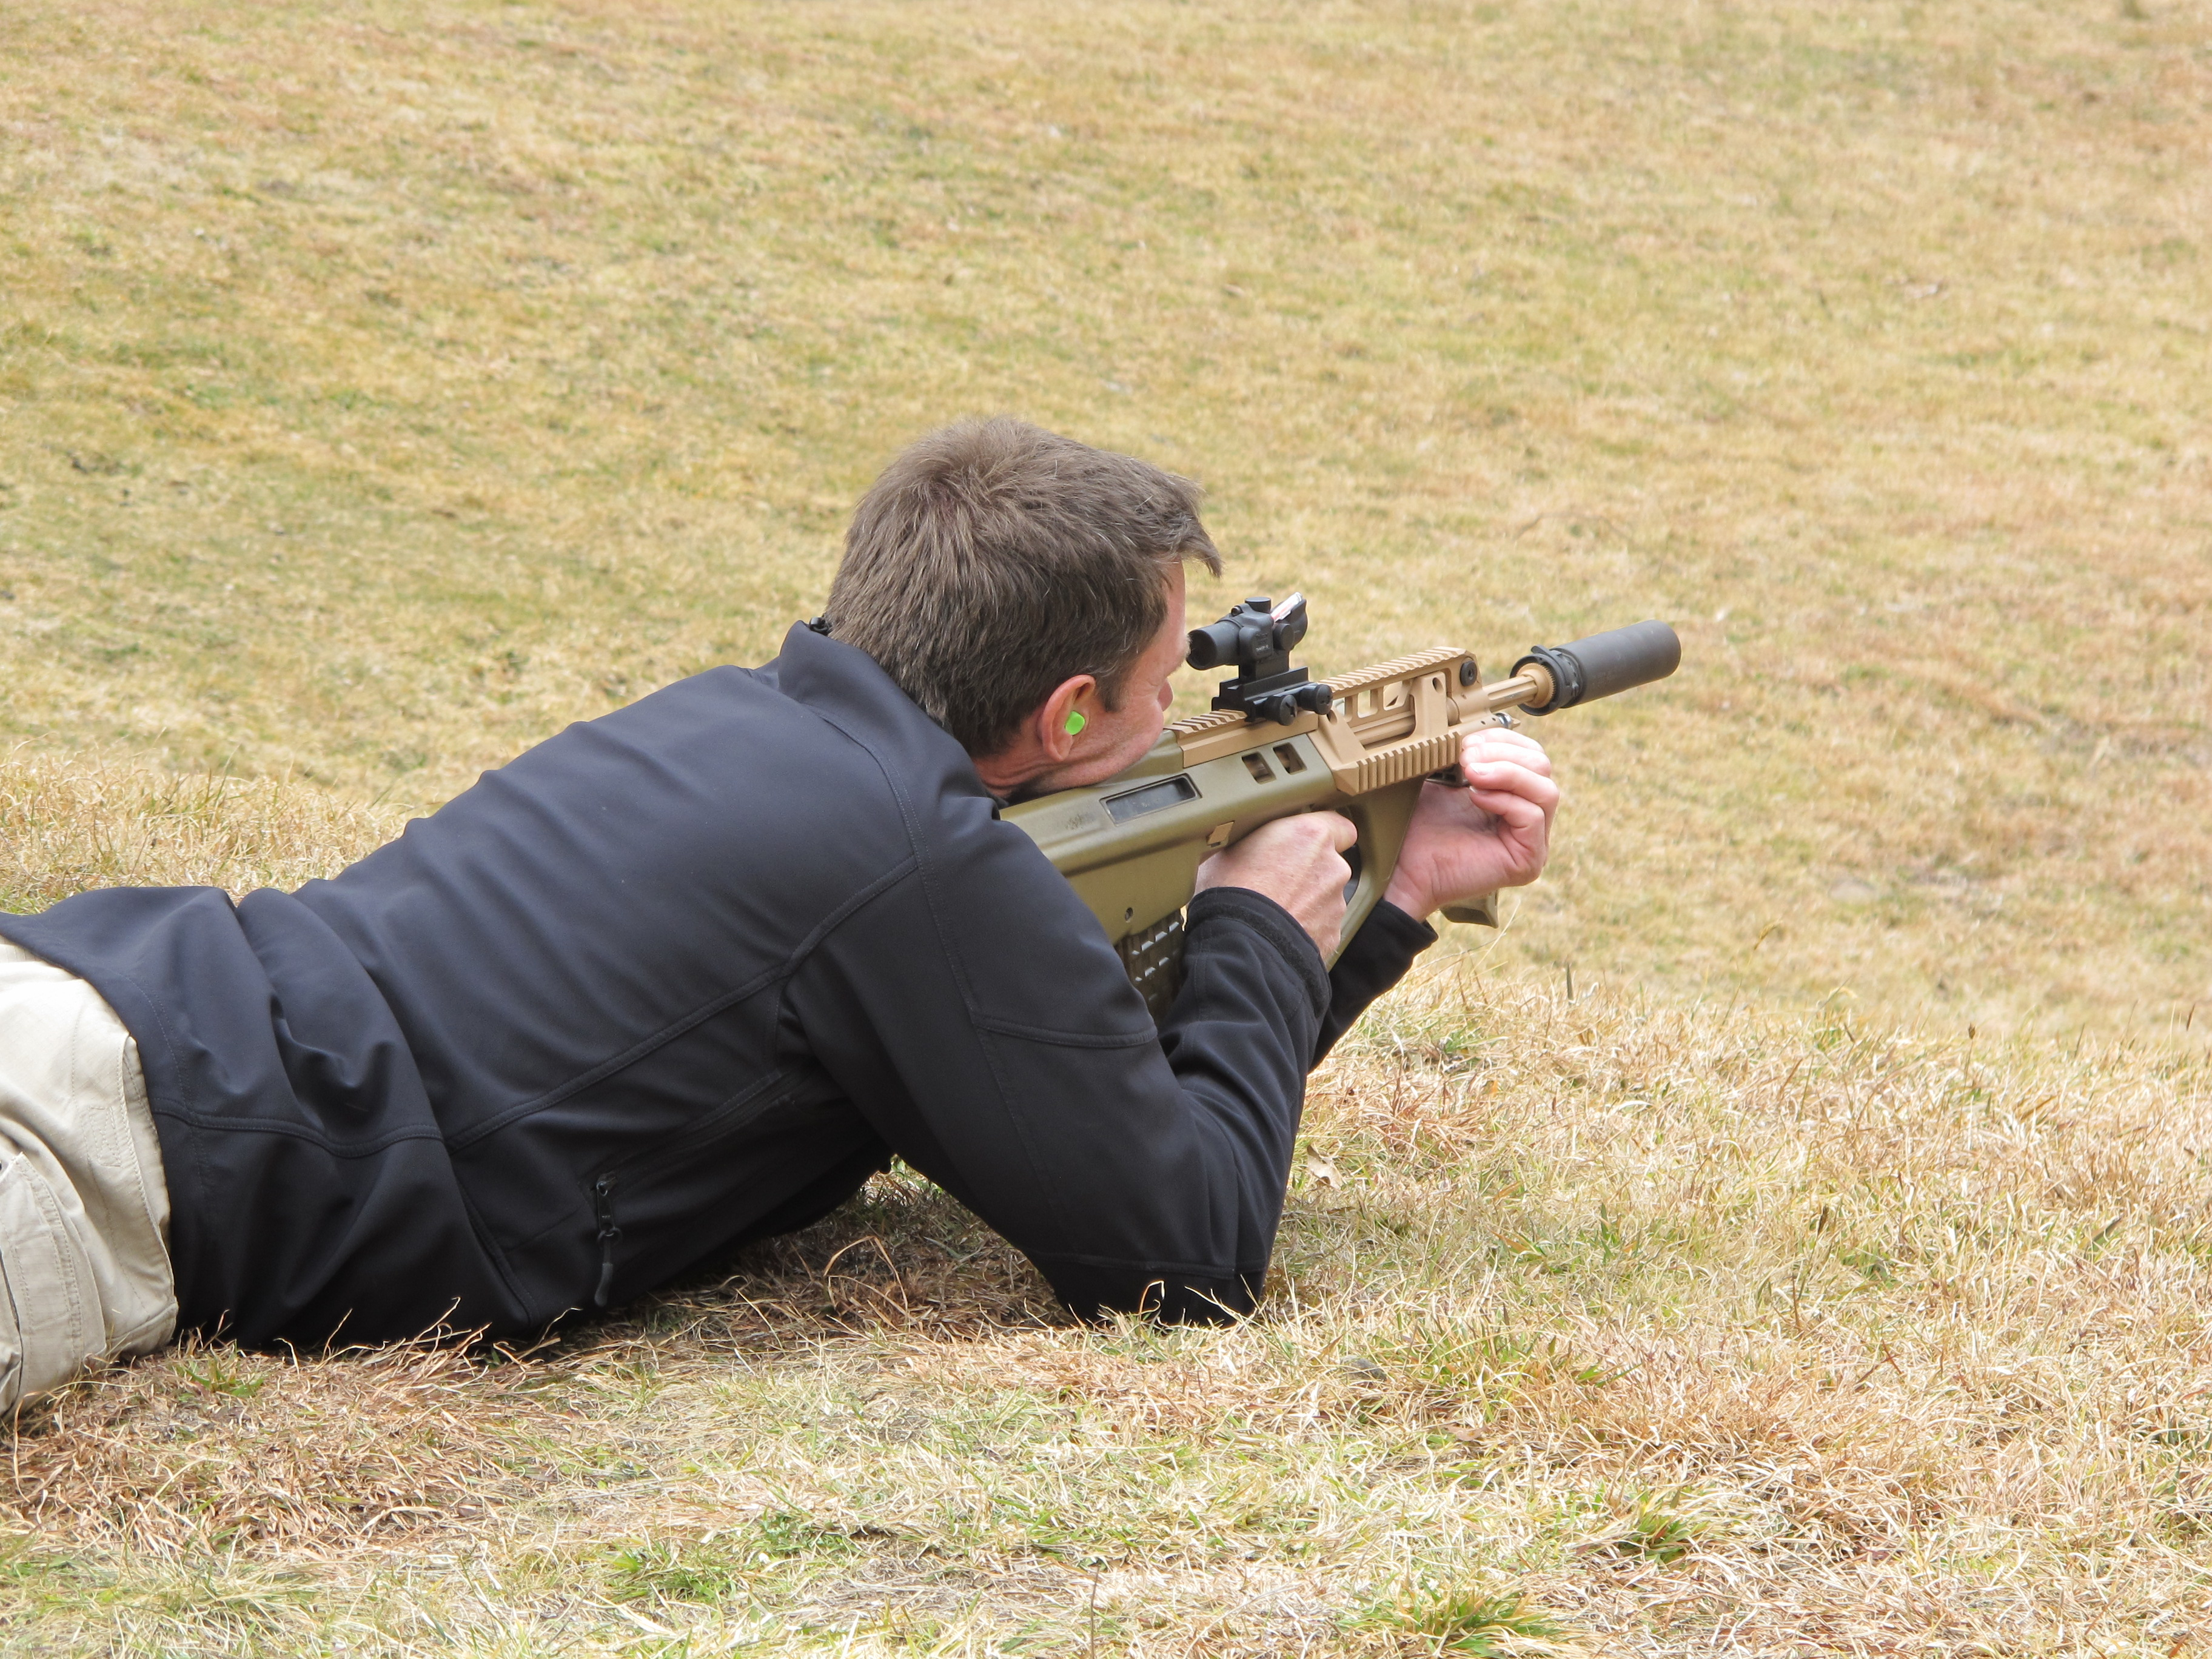 """Rob Maylor, a former SASR sniper, firing the 16"""" barrel EF88 (fitted with Ase Utra suppressor, Trijicon TA44SR-10 1.5x16 ACOG, and folding foregrip)"""